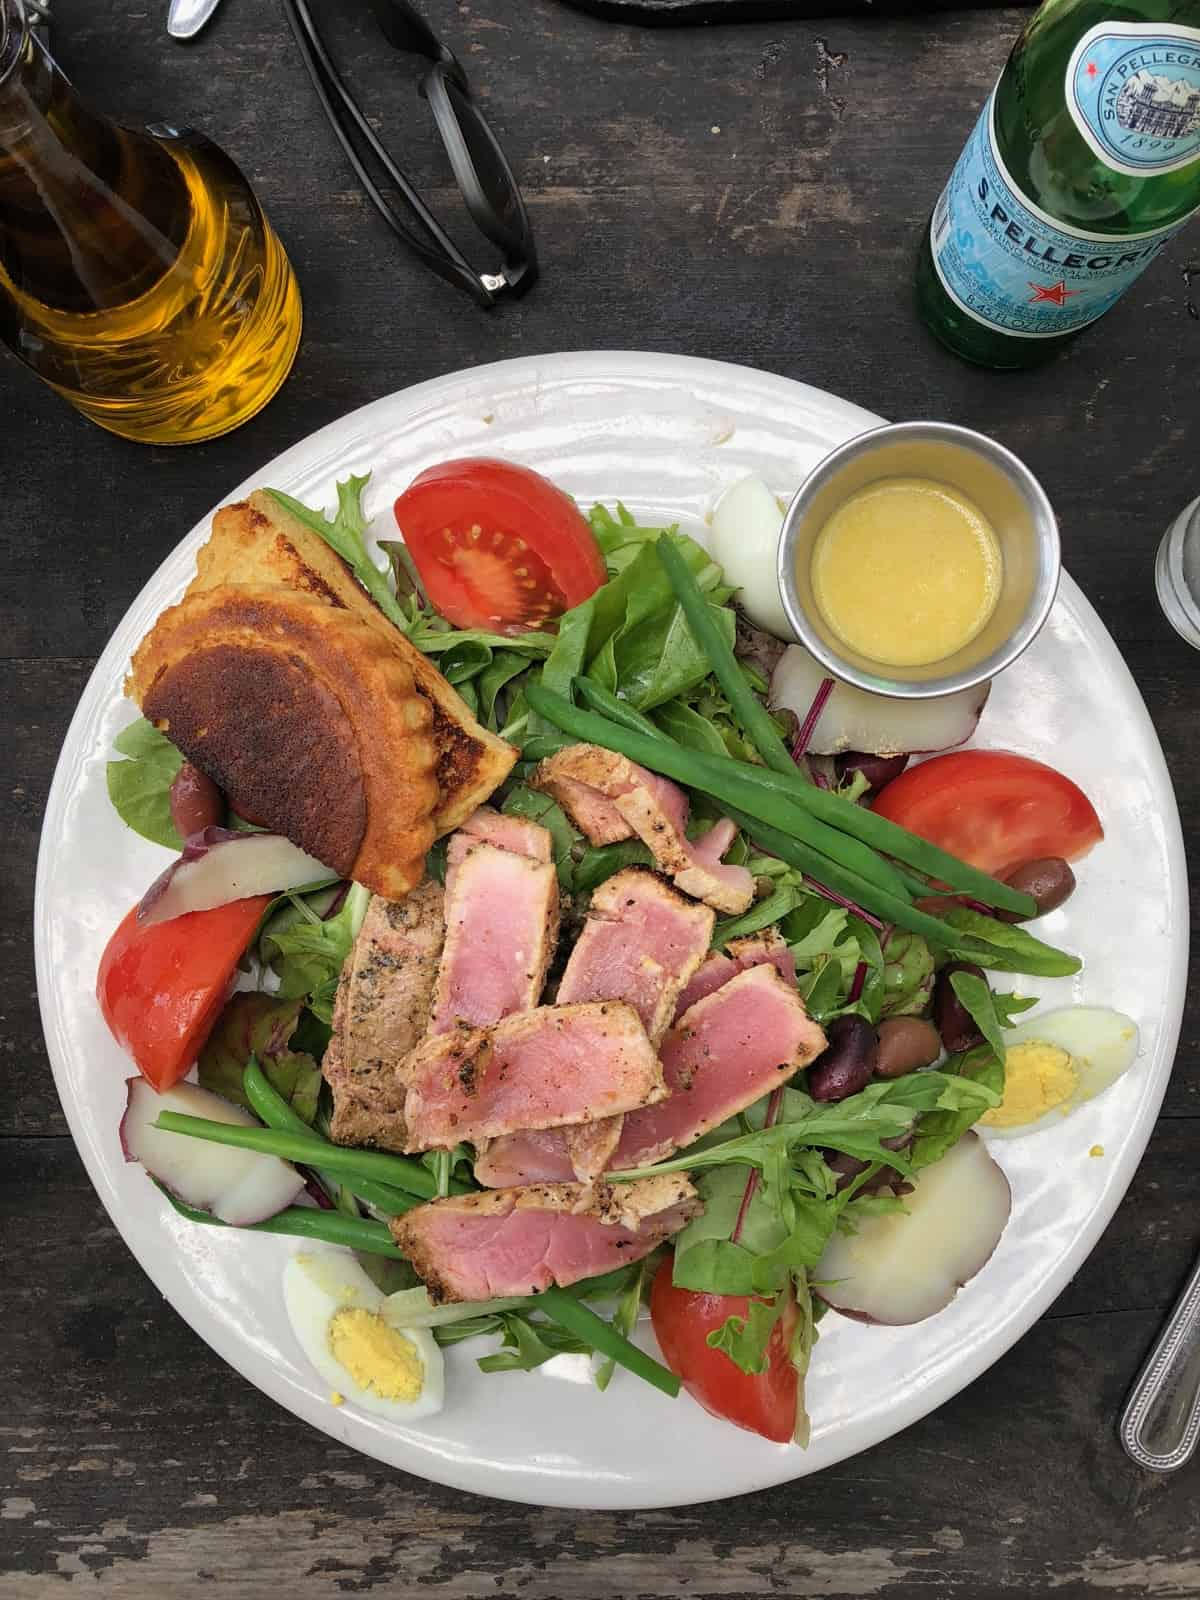 Tuna nicoise salad with gluten free bread and dressing on the side